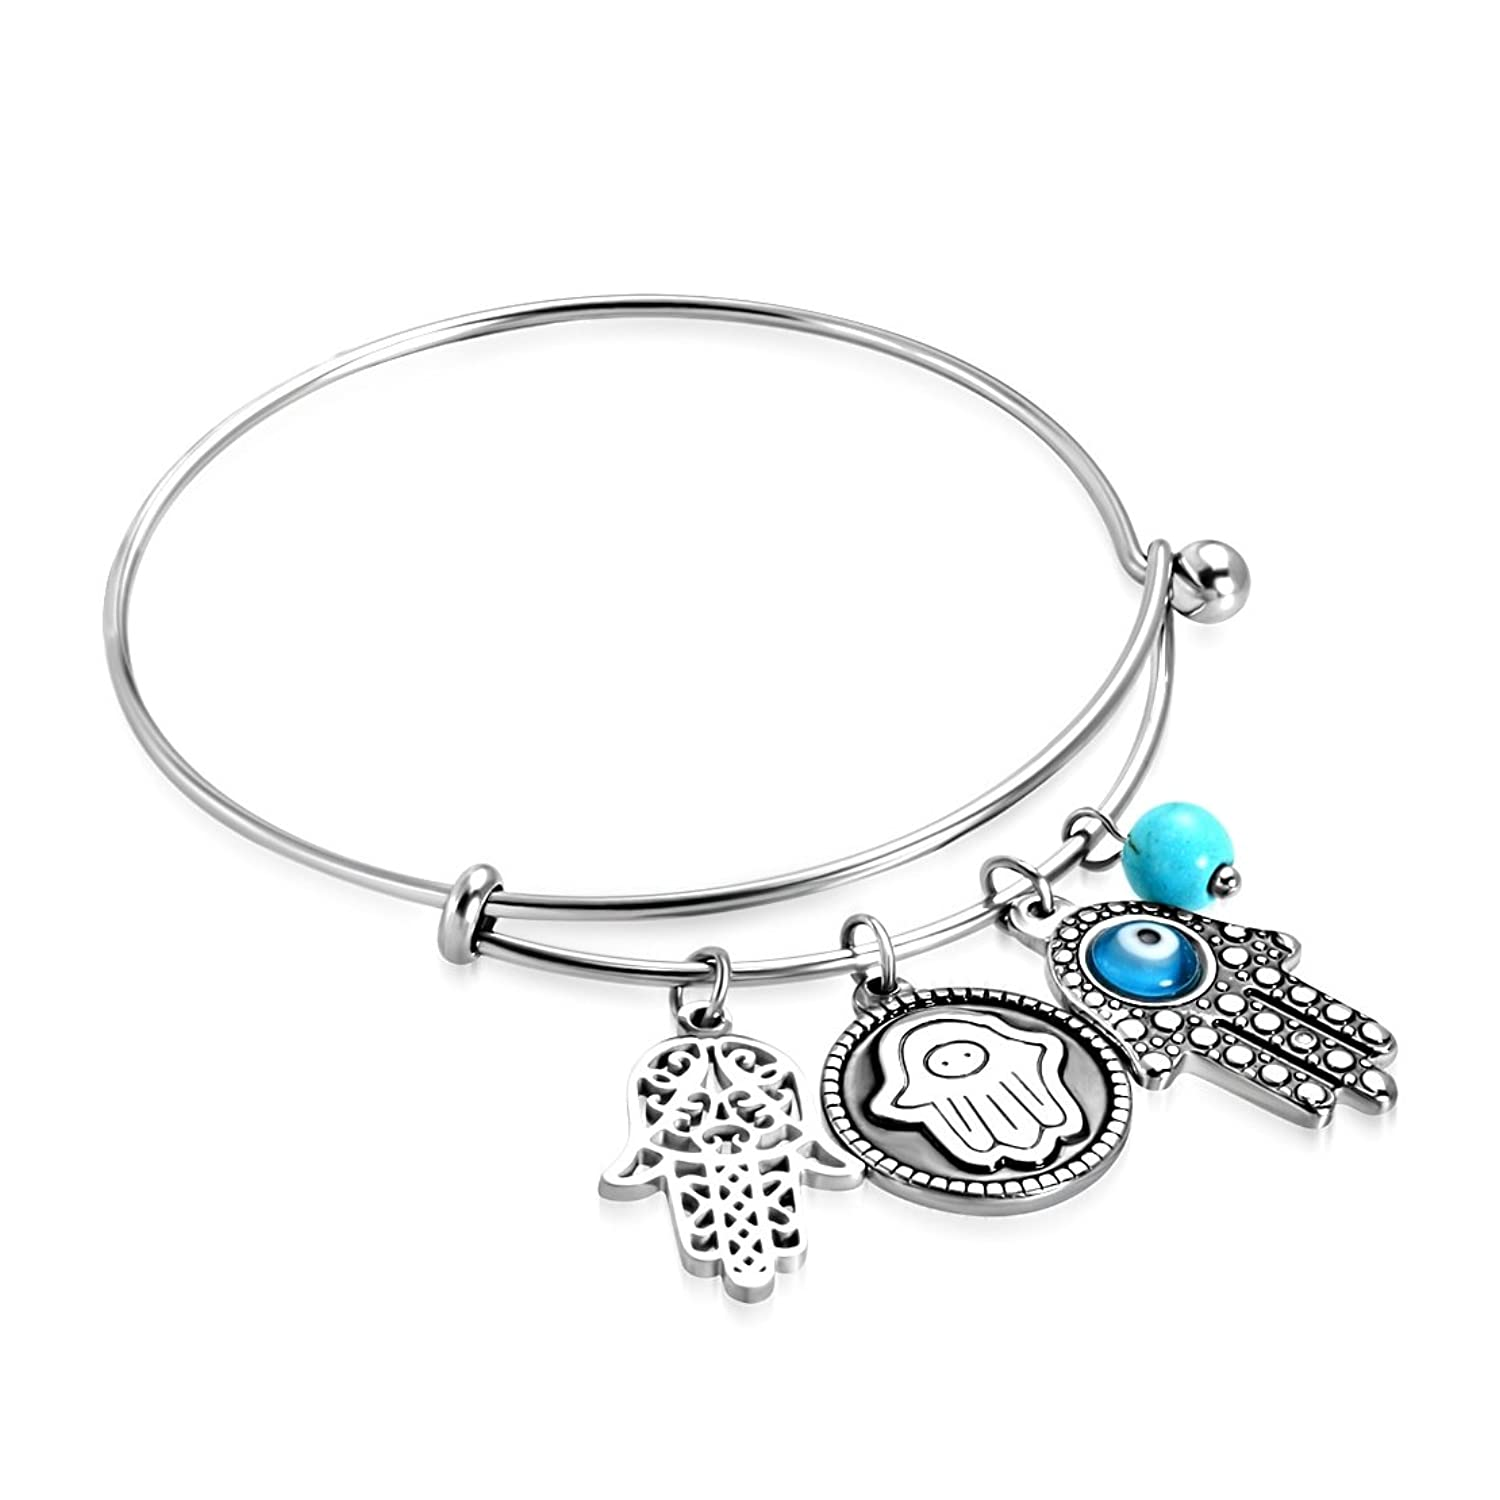 Stainless Steel 2 Color Evil Eye Hand of Fatima/ Hamsa Charm Adjustable Bangle with Turquoise Bead Length: 8""